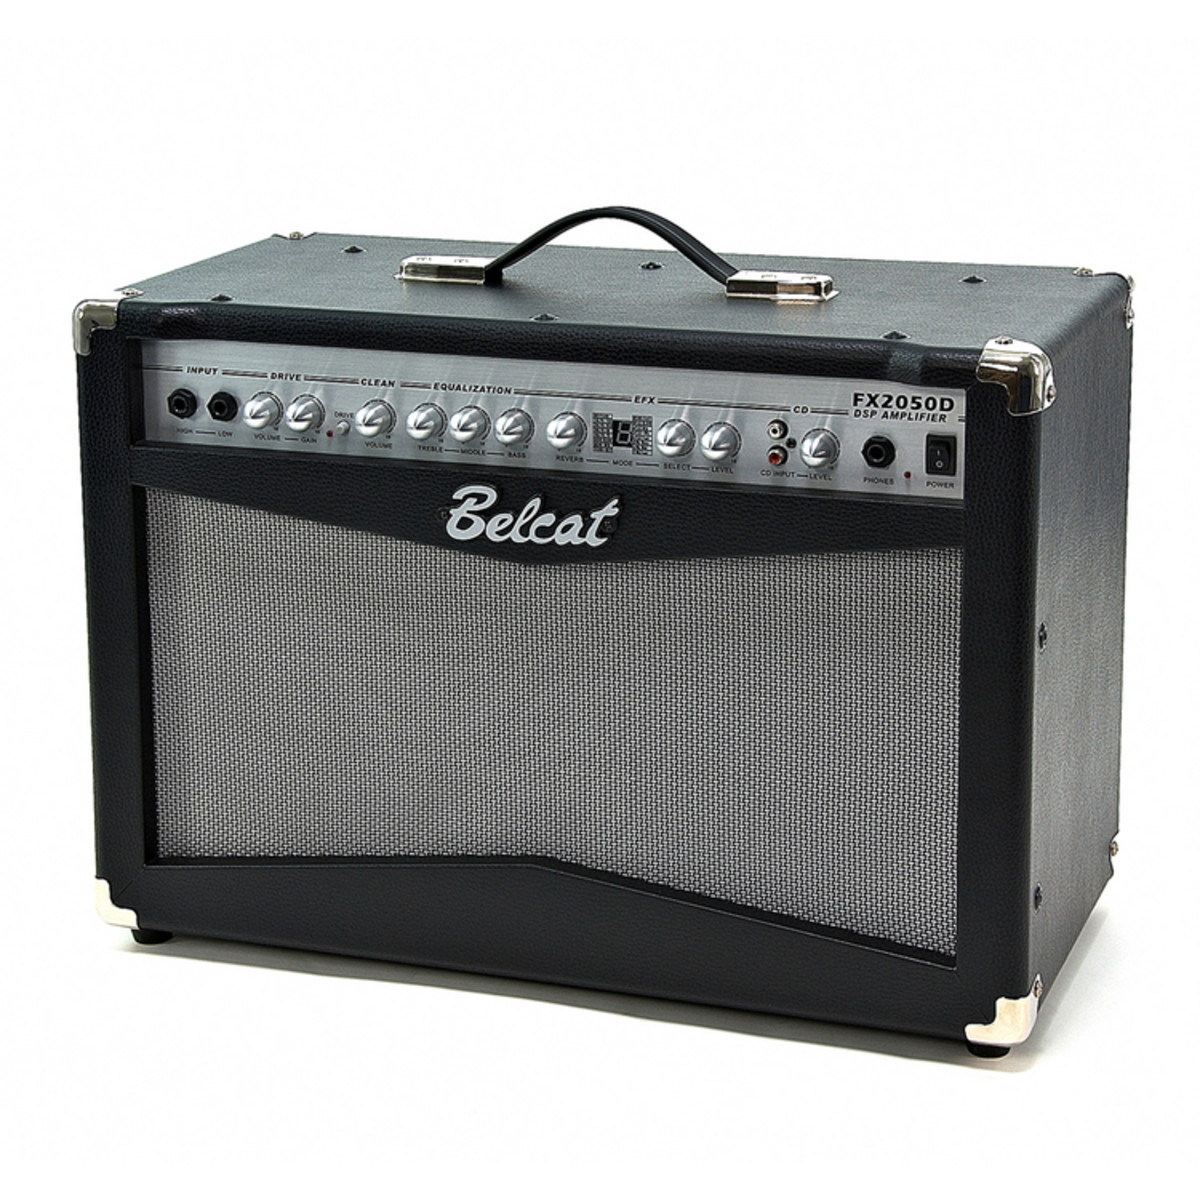 belcat fx2050d 50w guitar combo amp at gear4music. Black Bedroom Furniture Sets. Home Design Ideas